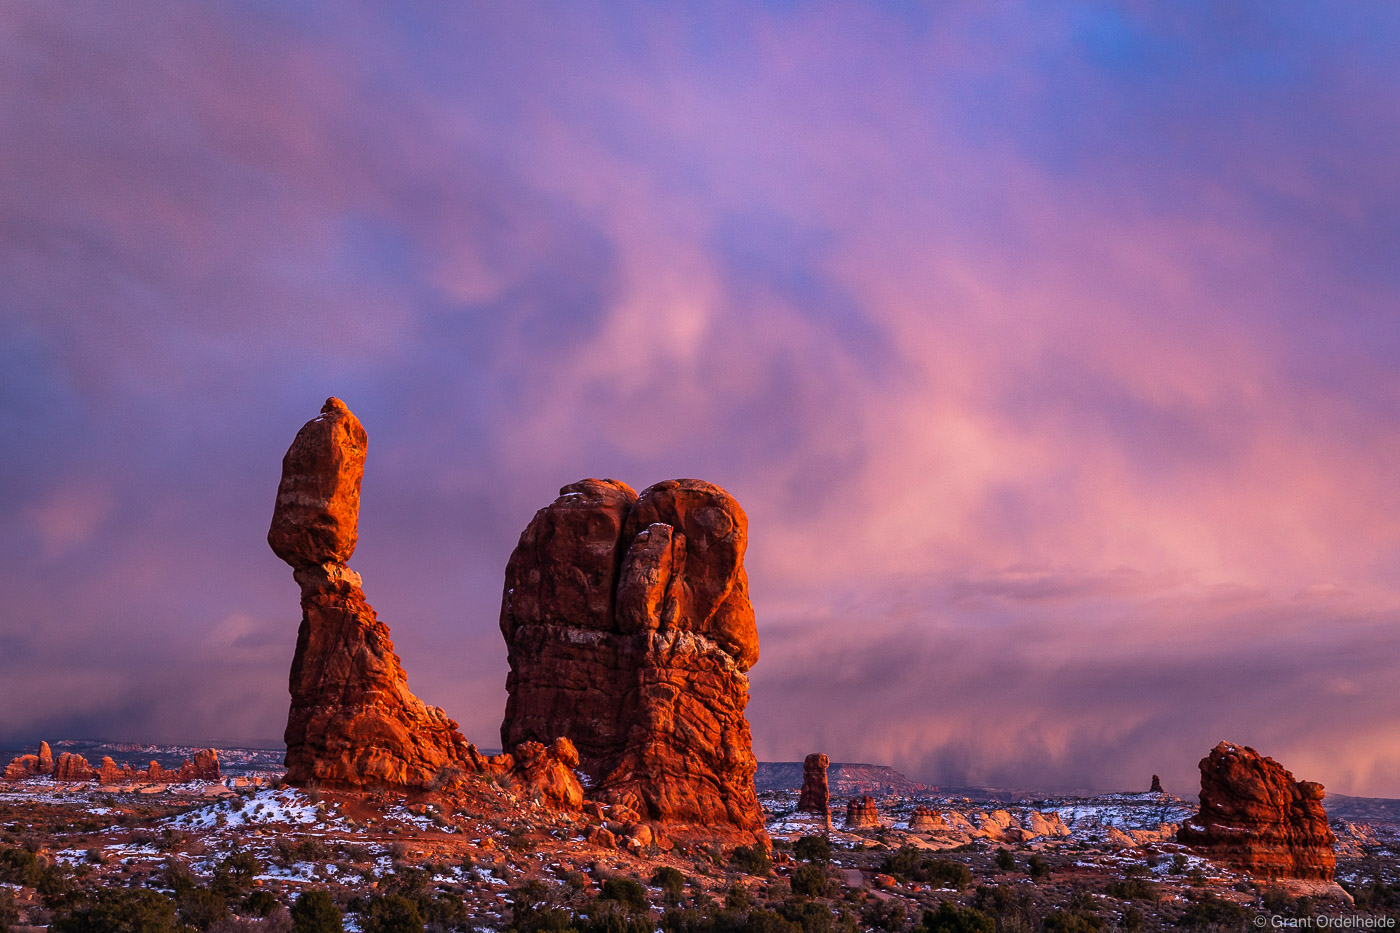 A winter storm over Arches National Park near Moab, Utah.